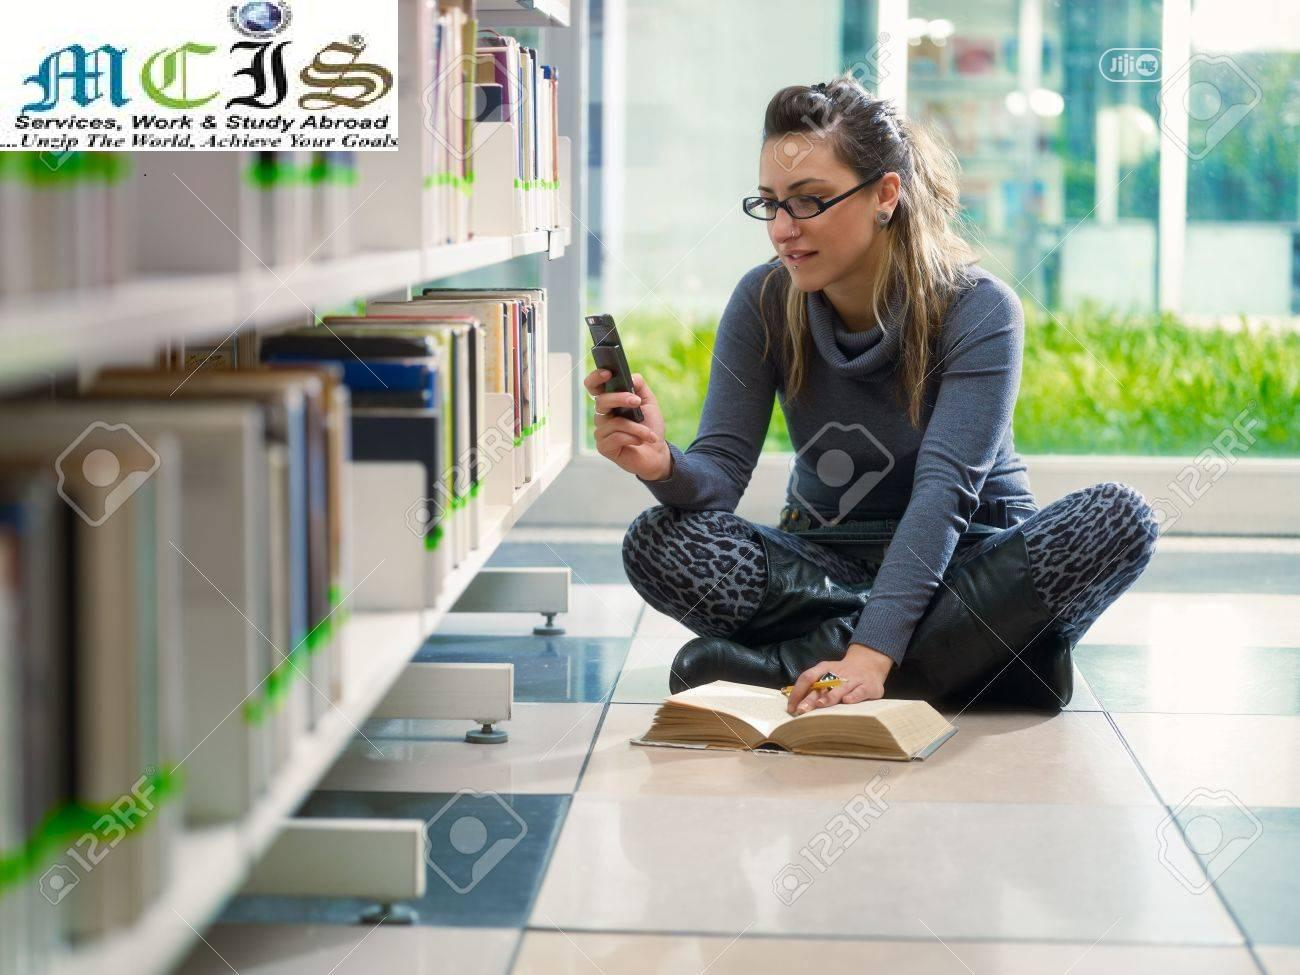 Steal The Chance To Access Real And Fast Knowledge Abroad With MCIS